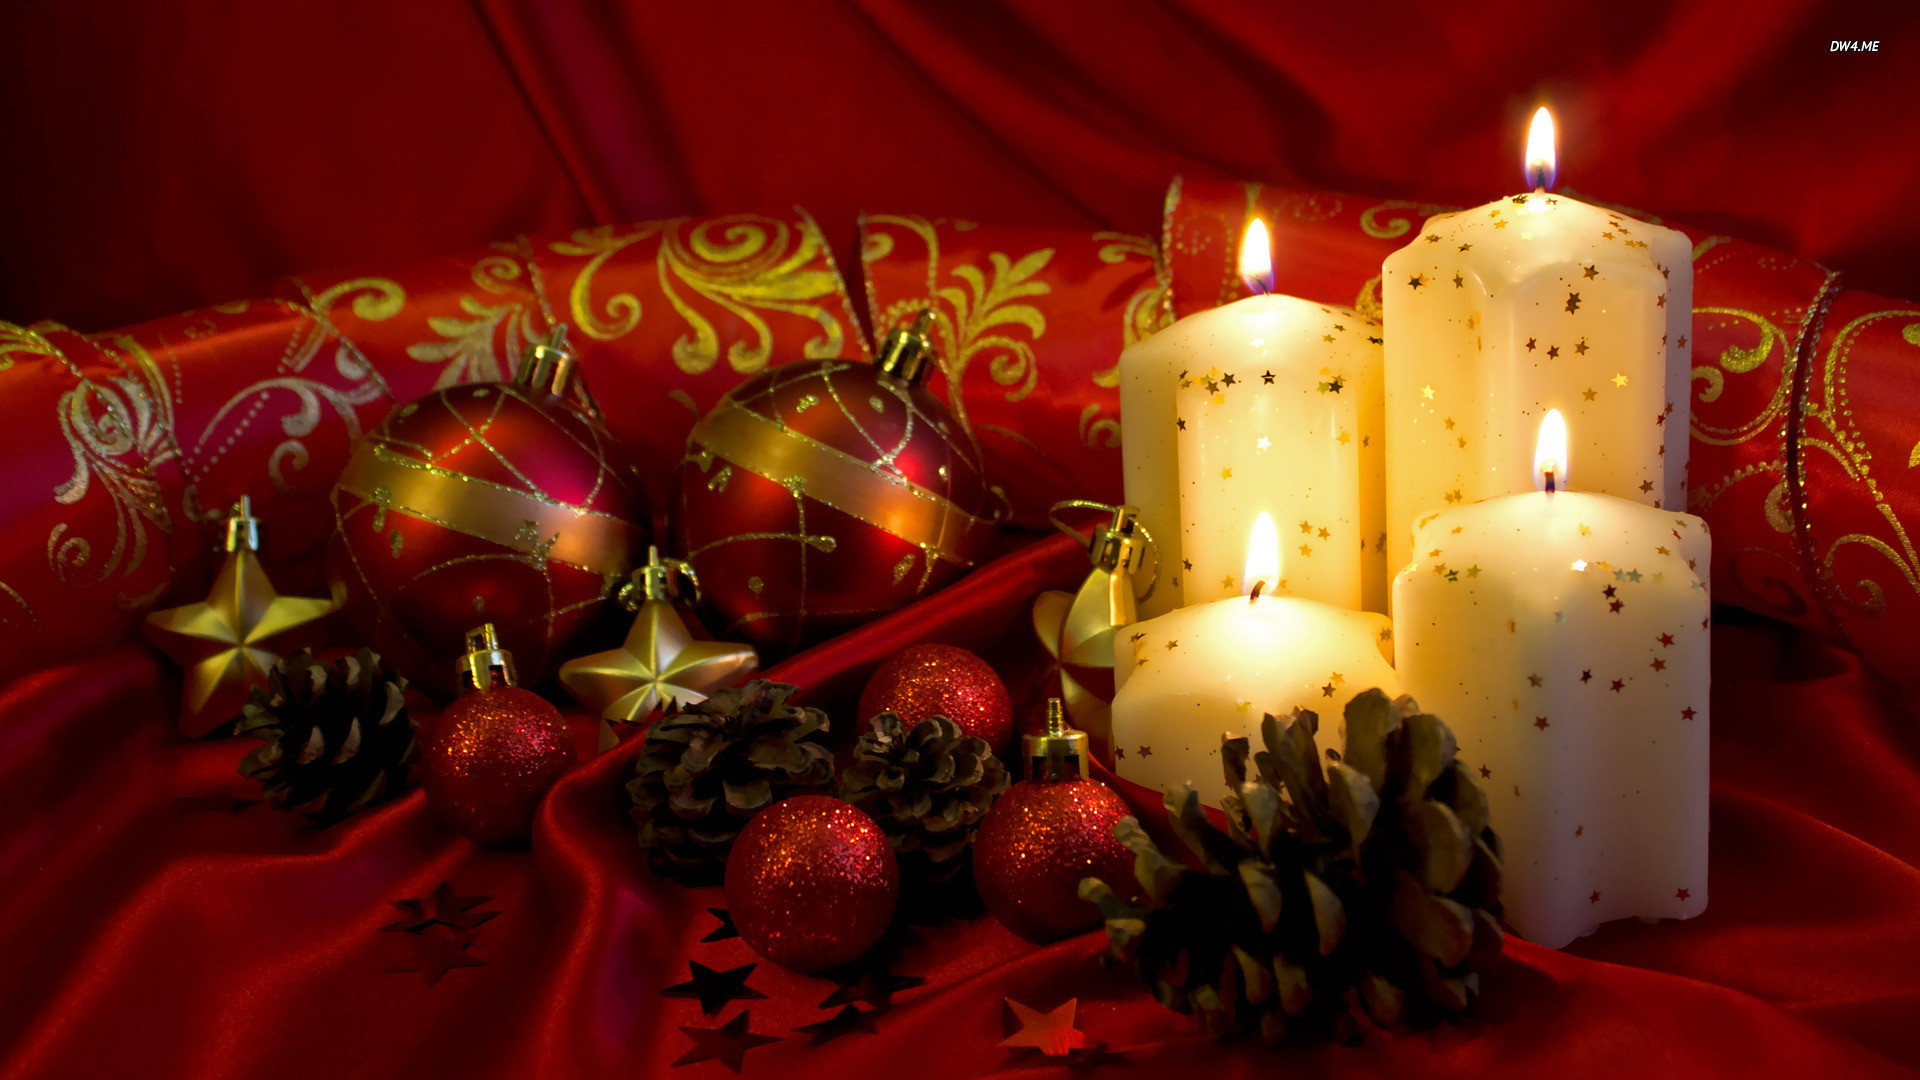 Decorating Wall Pictures For Christmas,decorating wall pictures for  christmas,christmas decorations wallpaper 2017 …